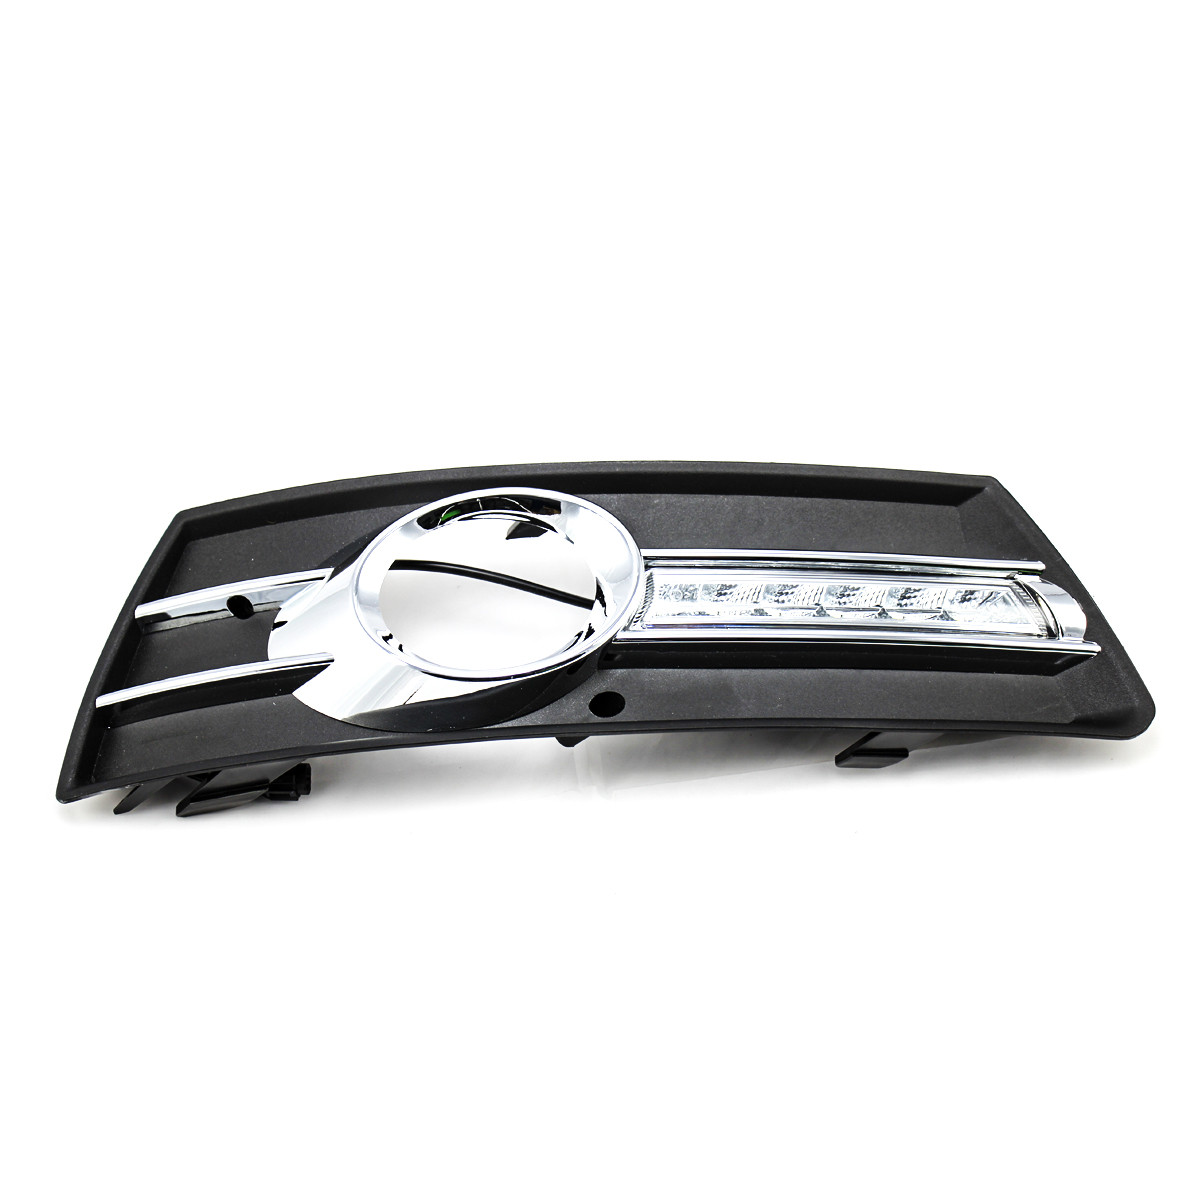 High quality LED  DRL special light For Volkswagen CC passat 2009 - 2013